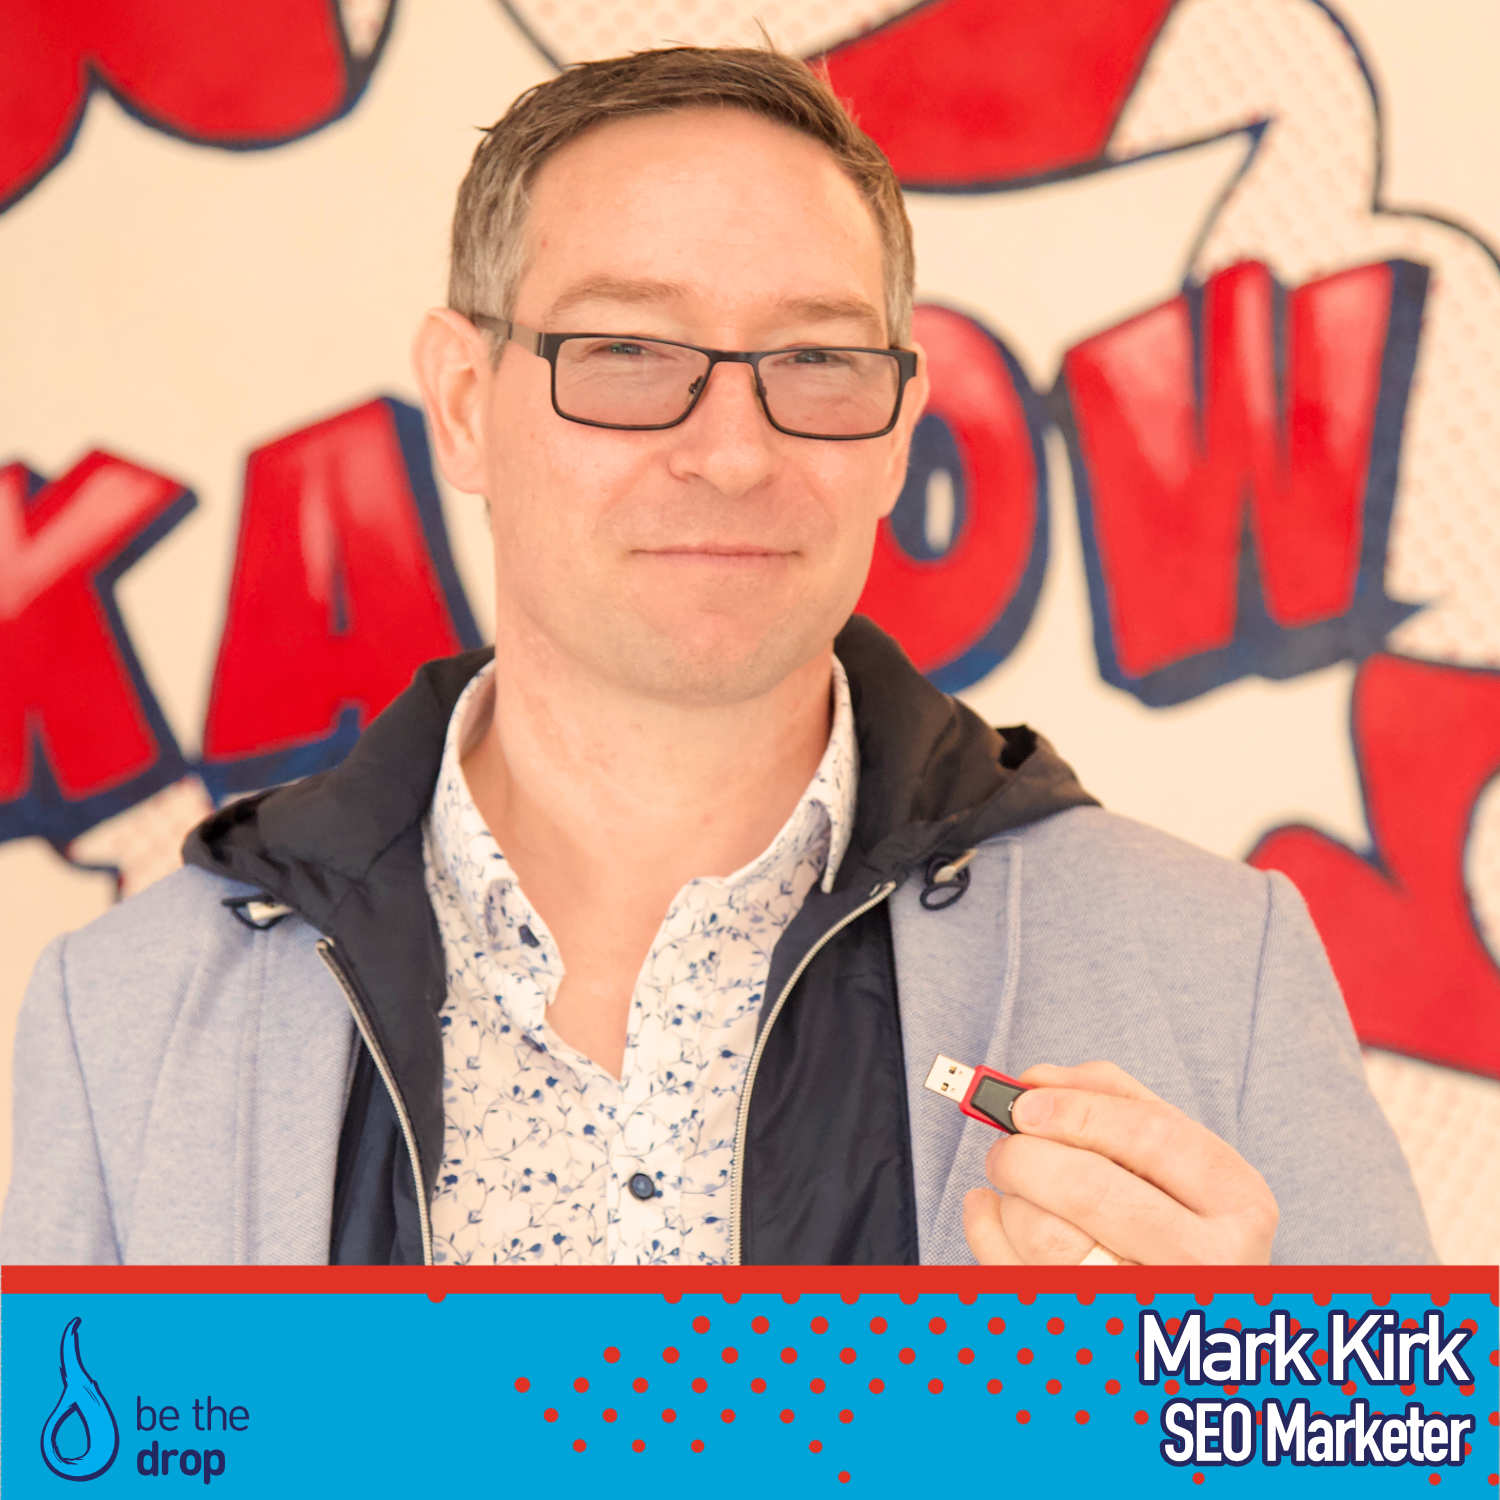 Mark Kirk from SEO Marketer Explains How SEO Helps Business